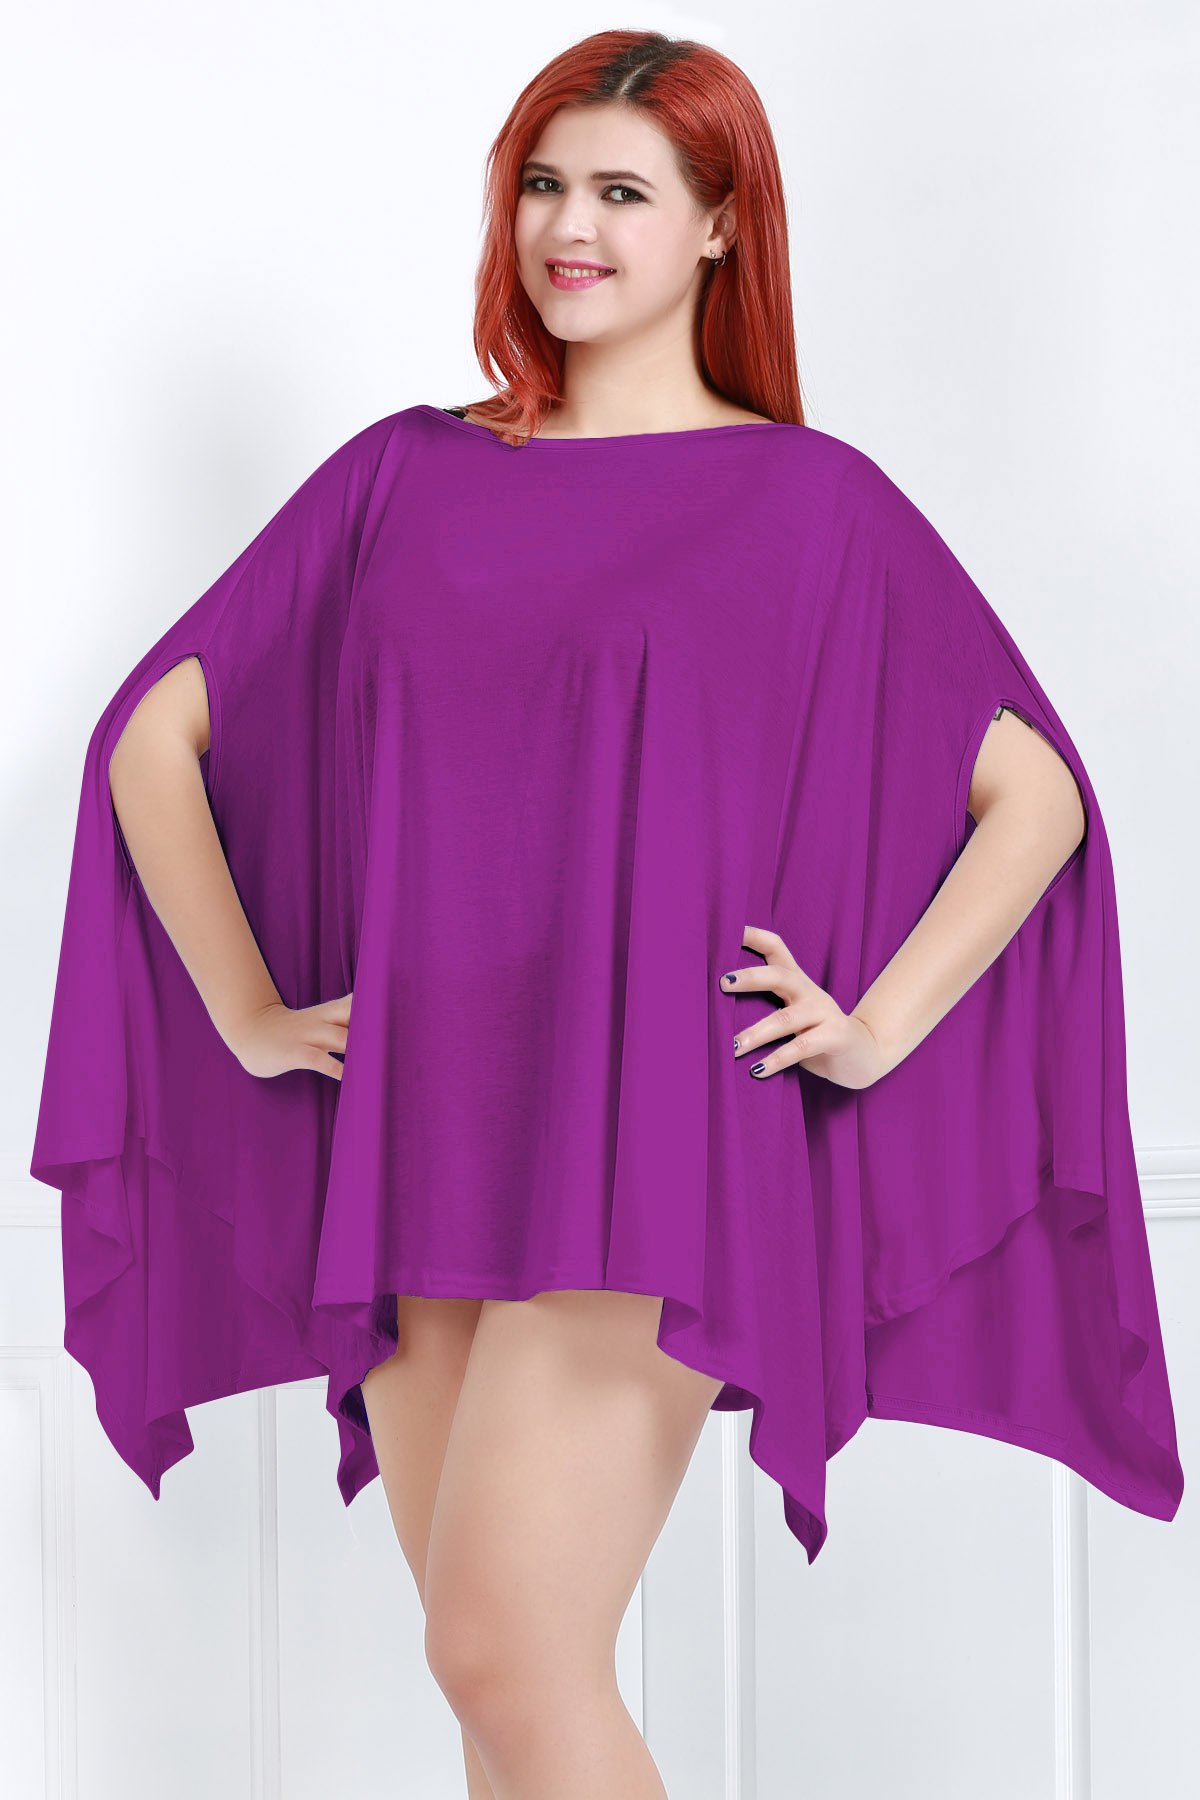 Handkerchief Plus Size Caped Top with Batwing Sleeve - PURPLE XL